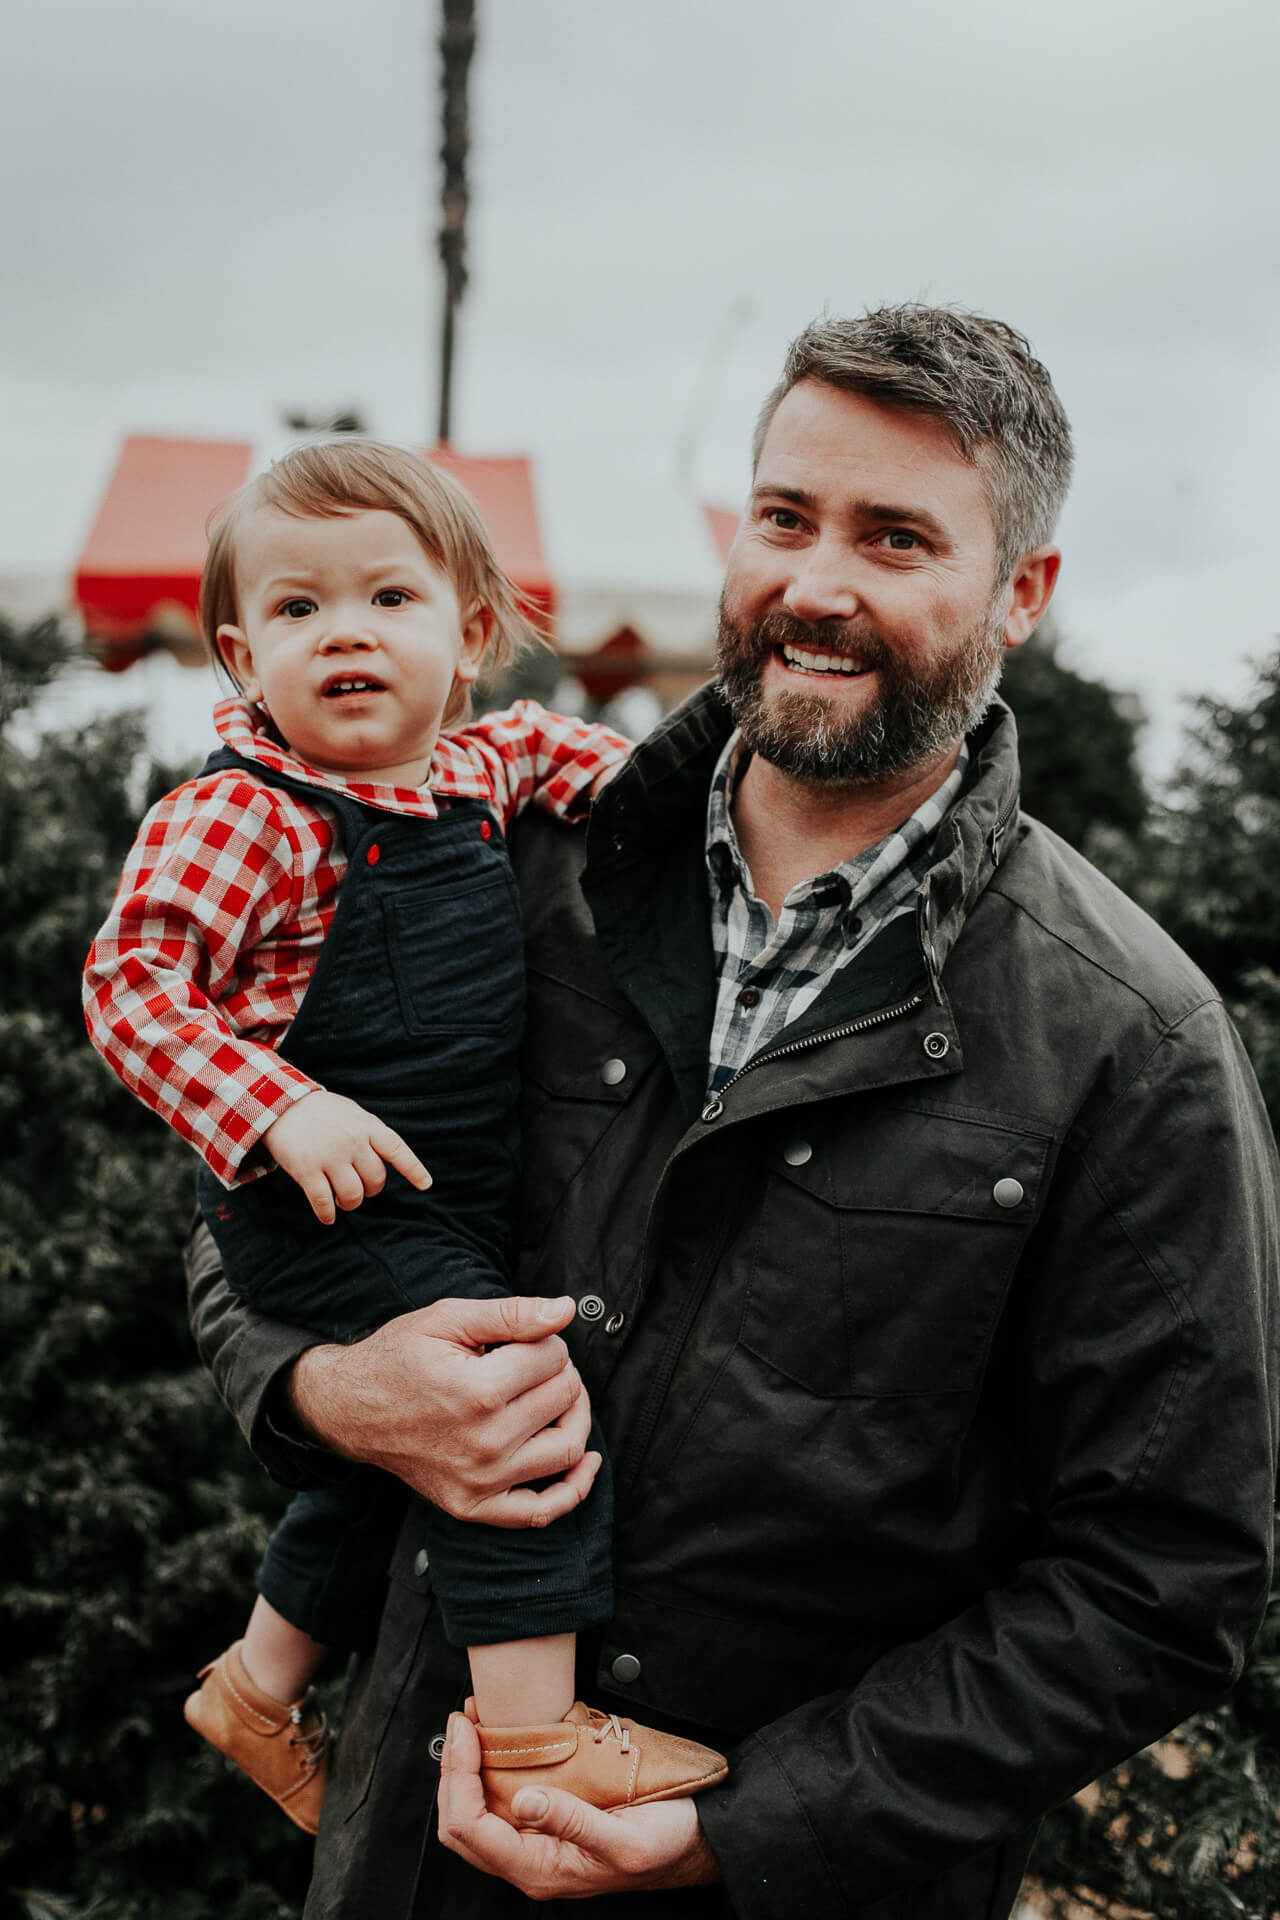 Daddy and Baby at Christmas Tree farm - family photos